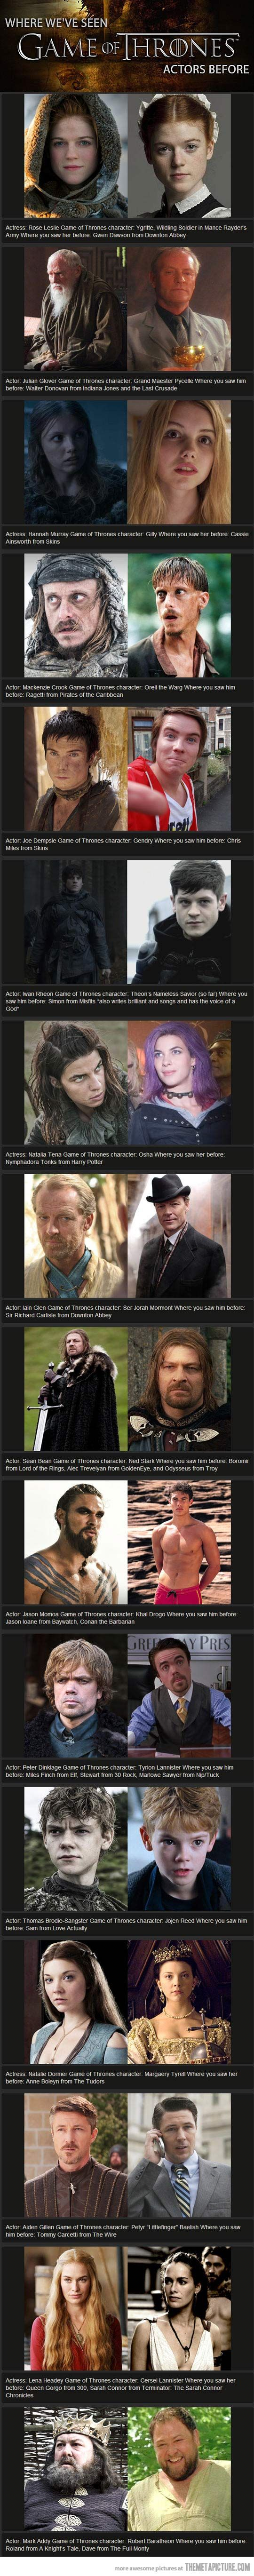 Game of Thrones characters: Where Have We Seen You Before? || Follow here http://pinterest.com/cakespinyoface/geek-of-thrones-a-storm-of-boards/ for even more Game of Thrones Geekery-- original art, mashups and more!